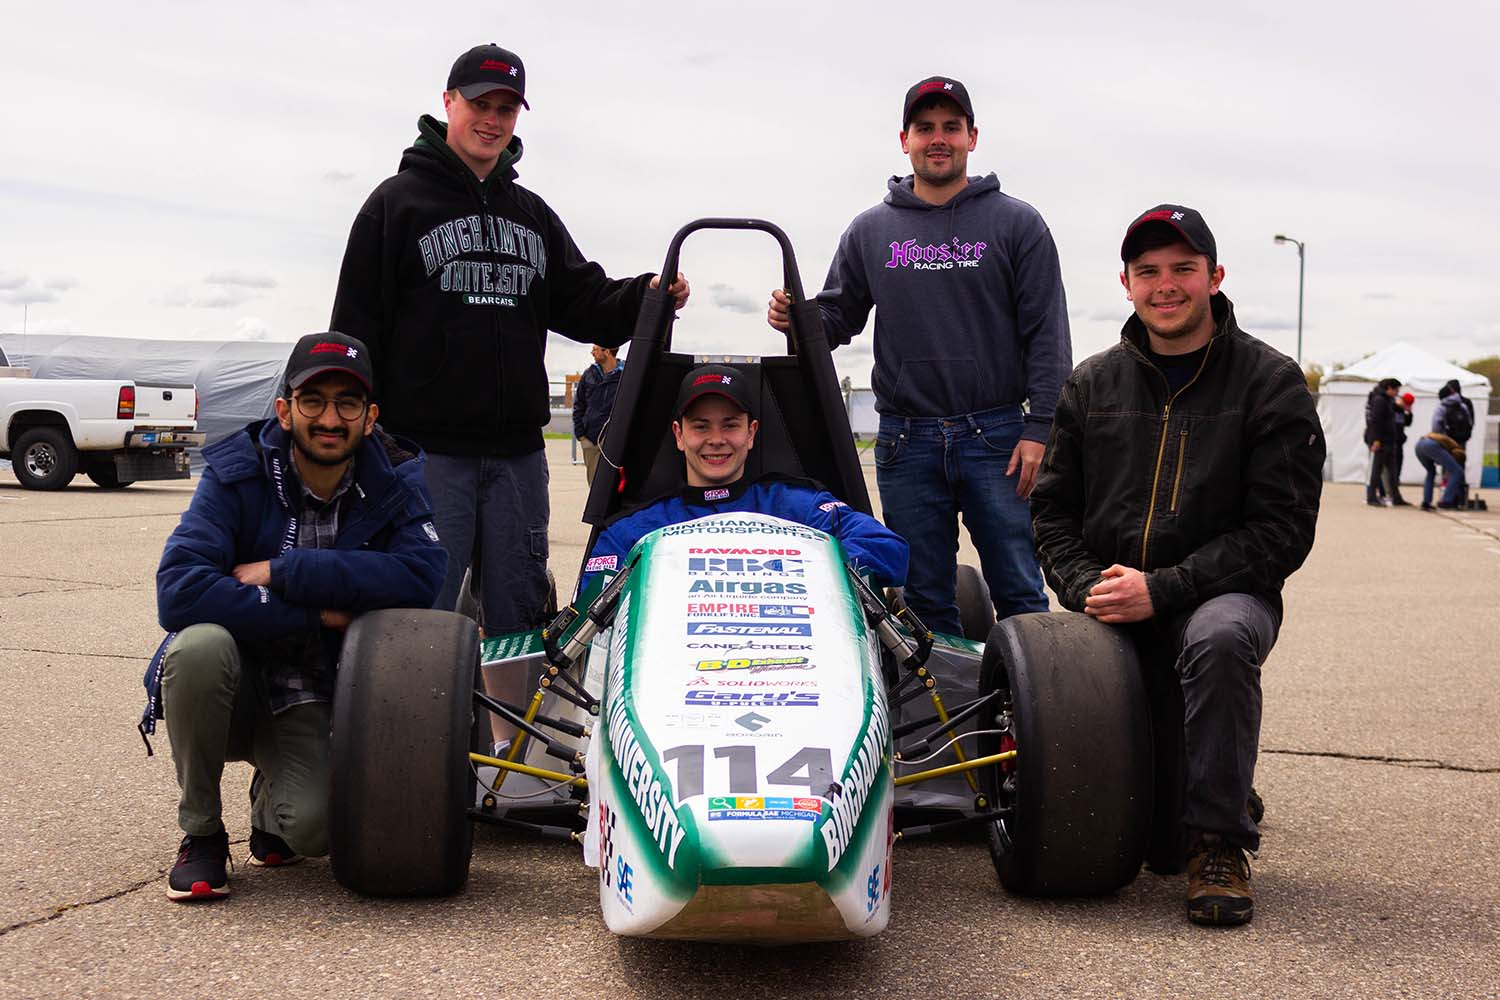 The Binghamton Motorsports team competed with a combustable-engine Formula car for the first time in the 2018-19 academic year.